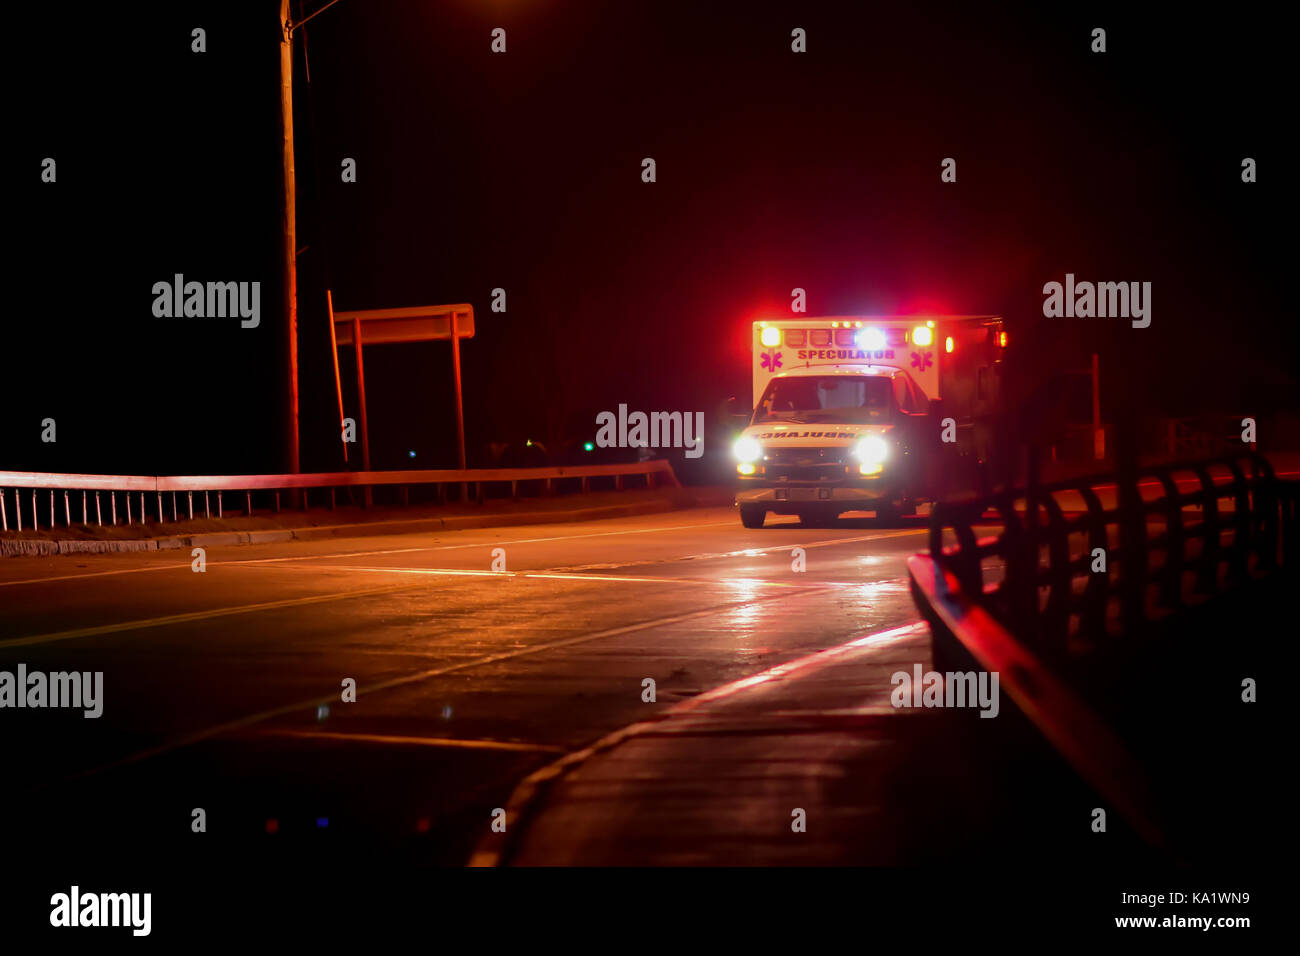 Speculator, NY ambulance racing to a medical emergency at night. - Stock Image